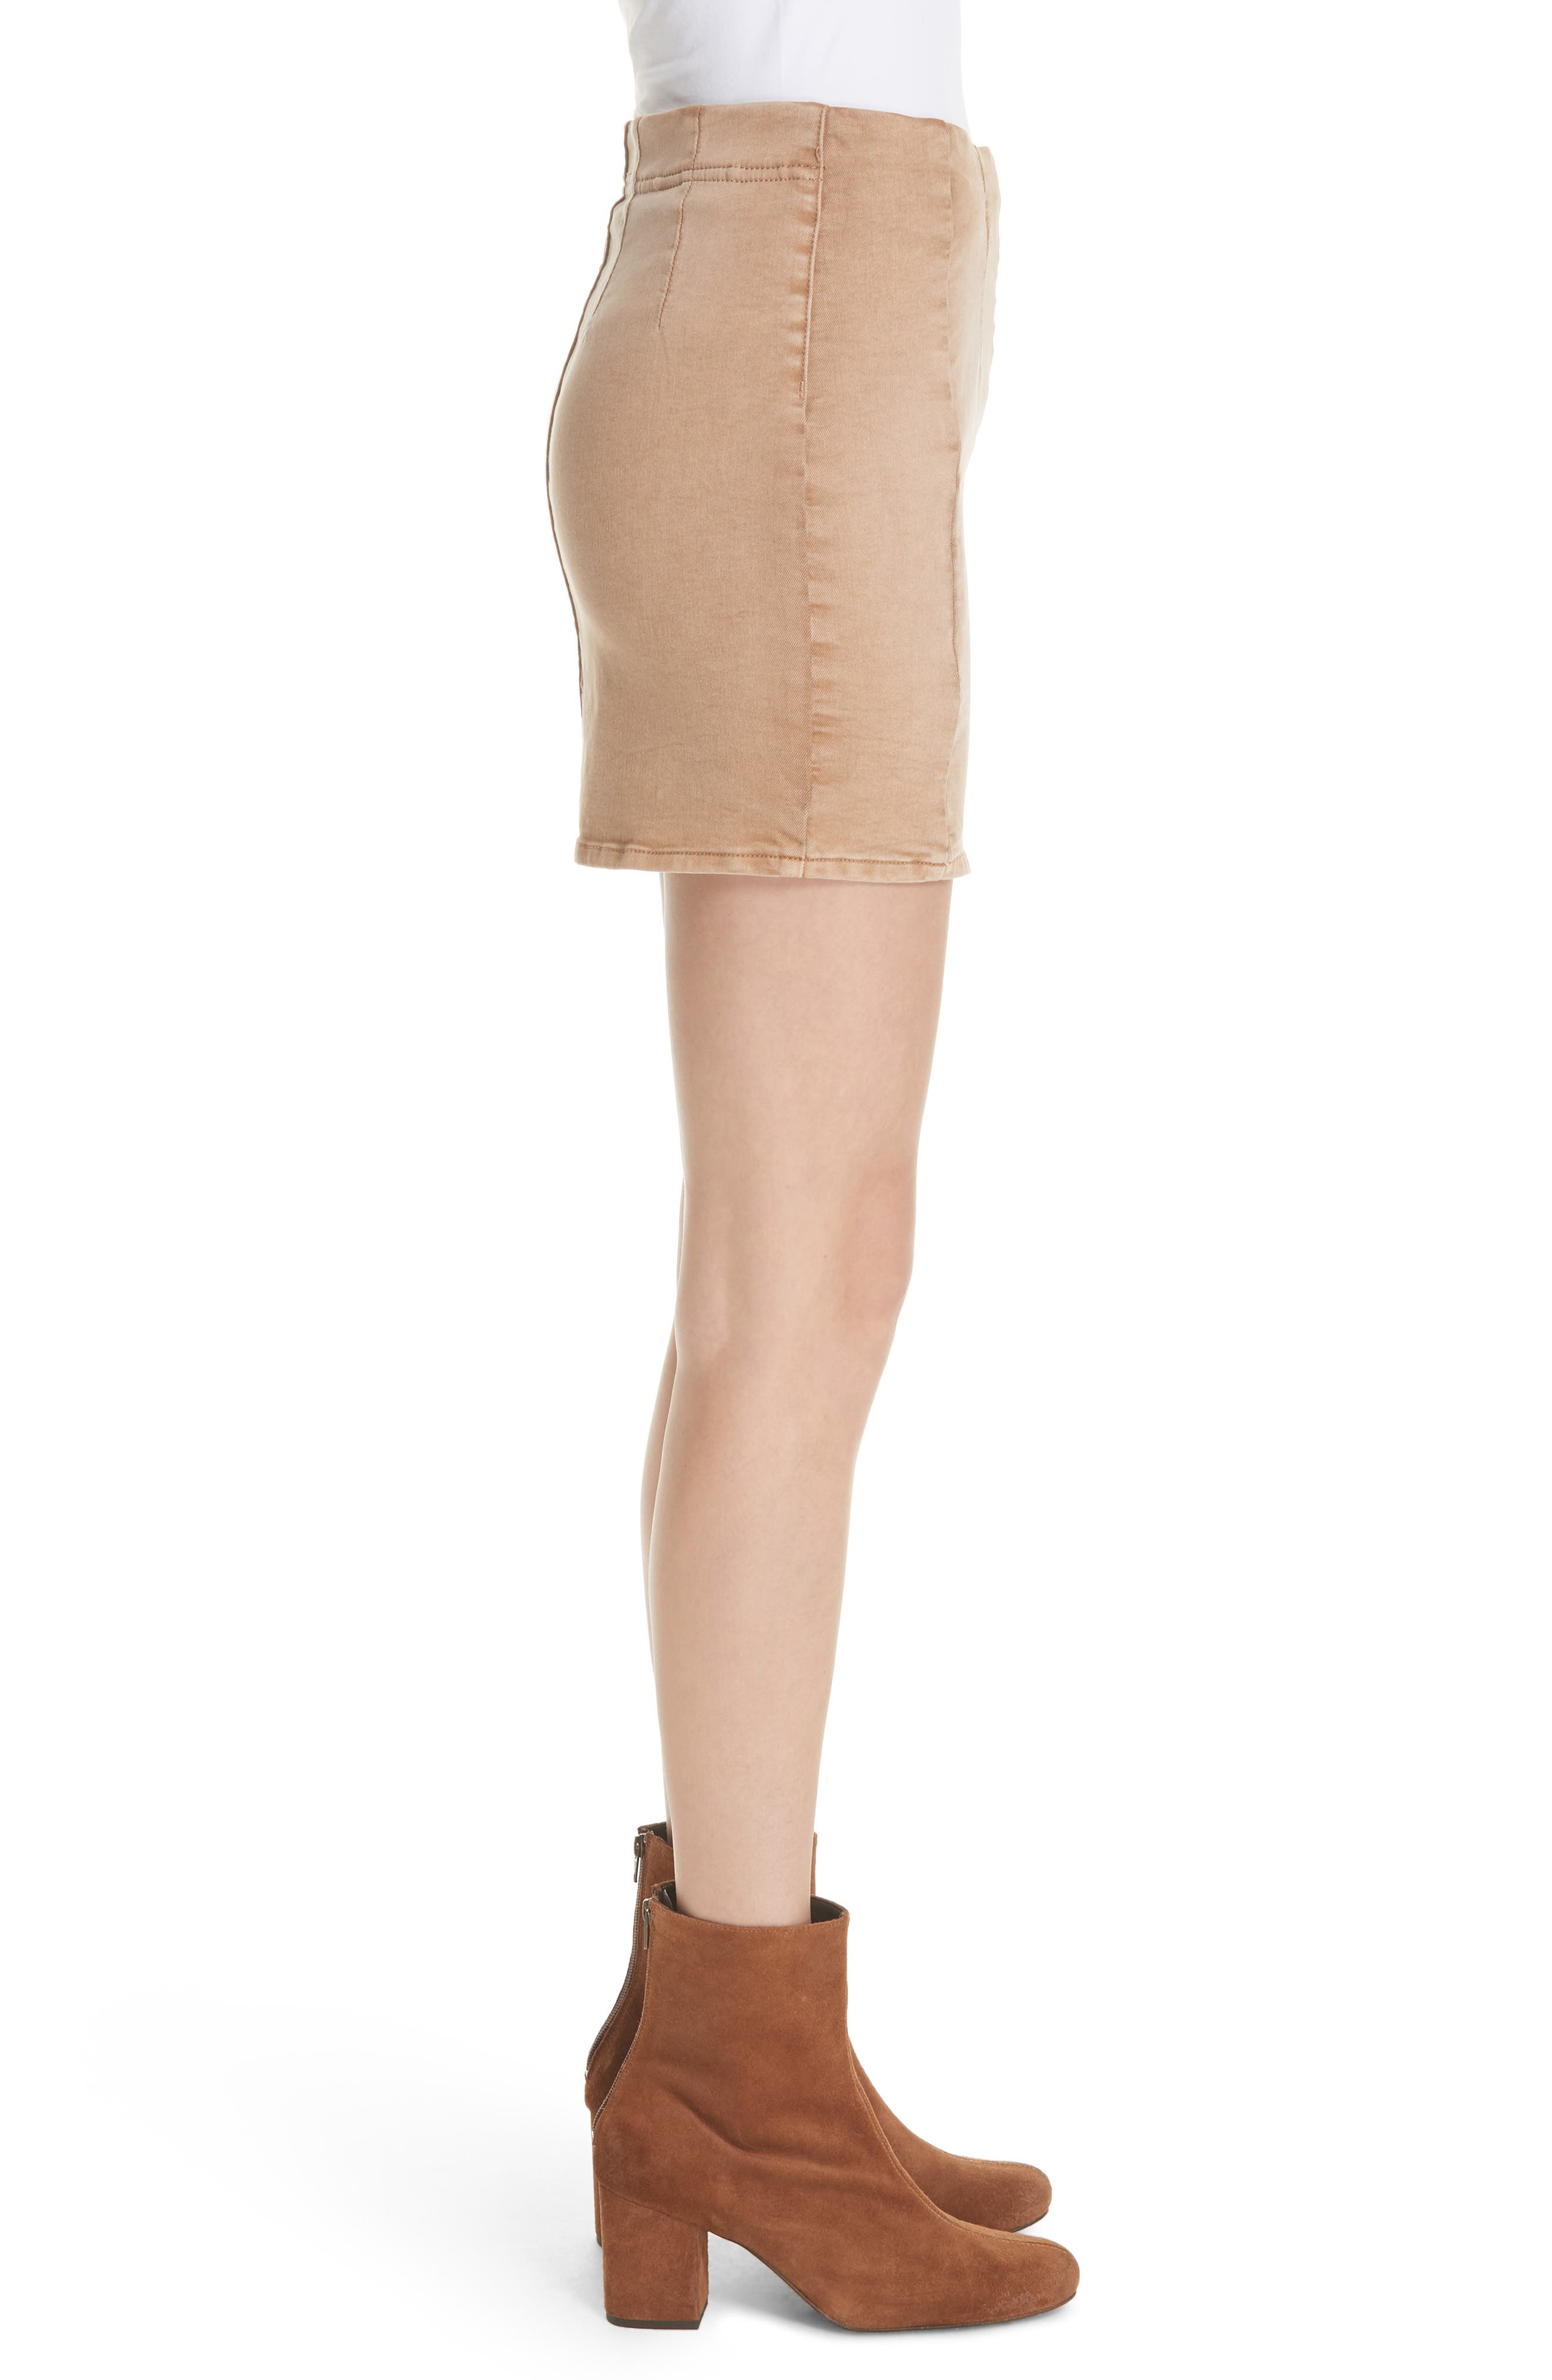 Femme Fatale Pull On Skirt,                             Alternate thumbnail 6, color,                             Khaki